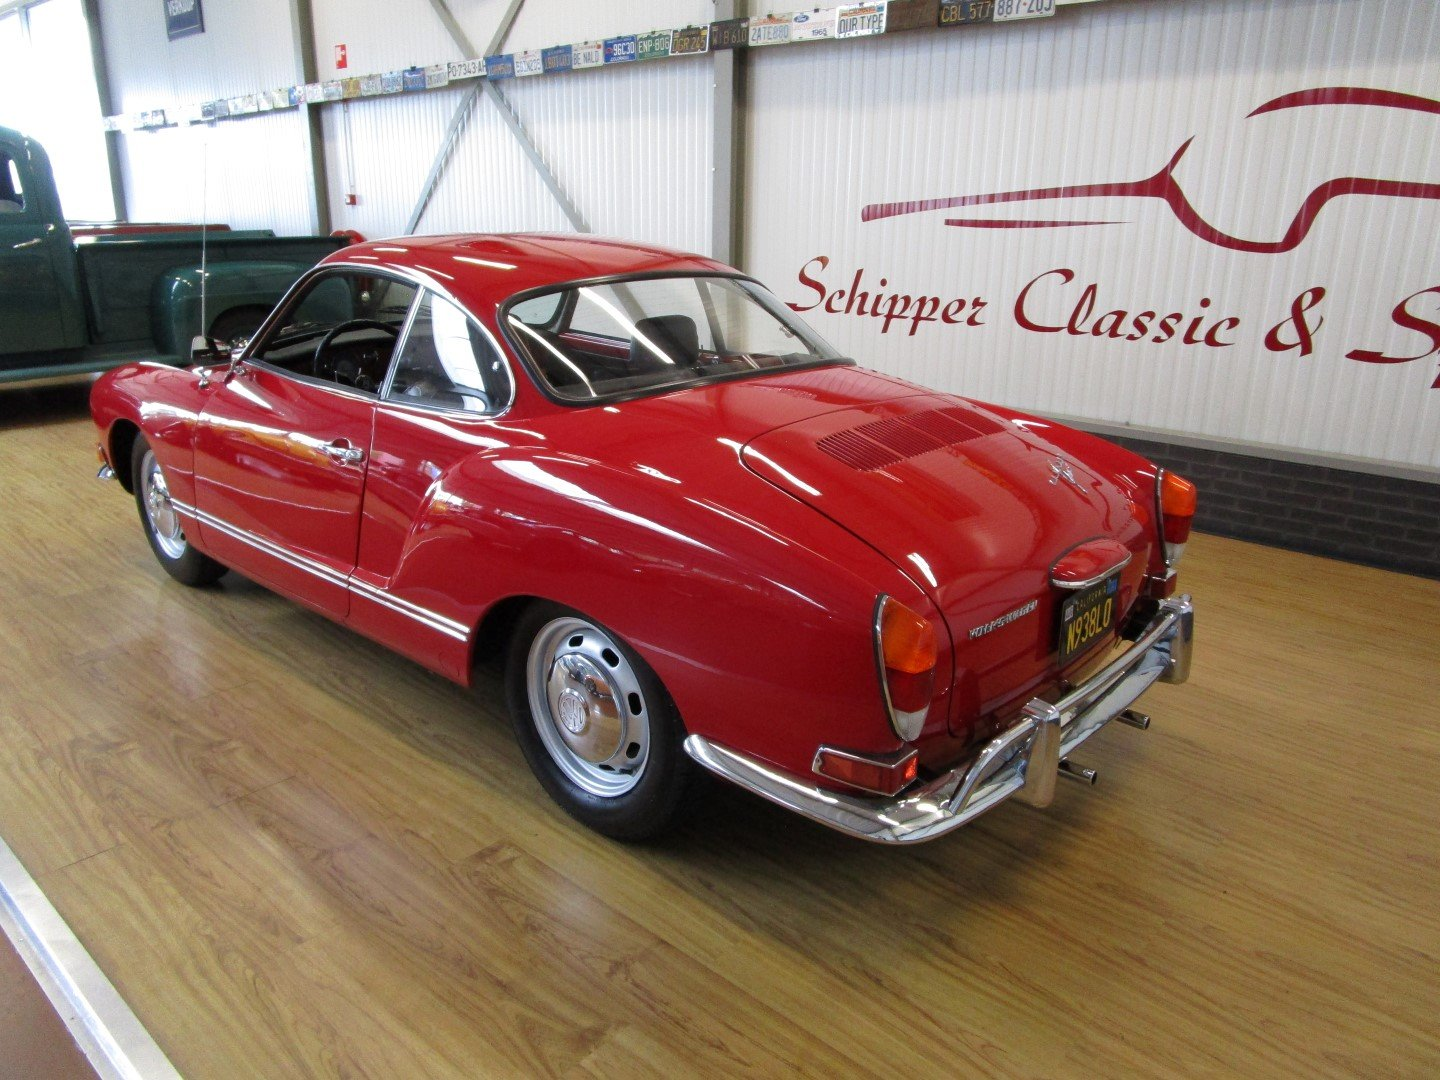 1970 Volkswagen Karmann Ghia Type 14 Coupé For Sale (picture 3 of 6)